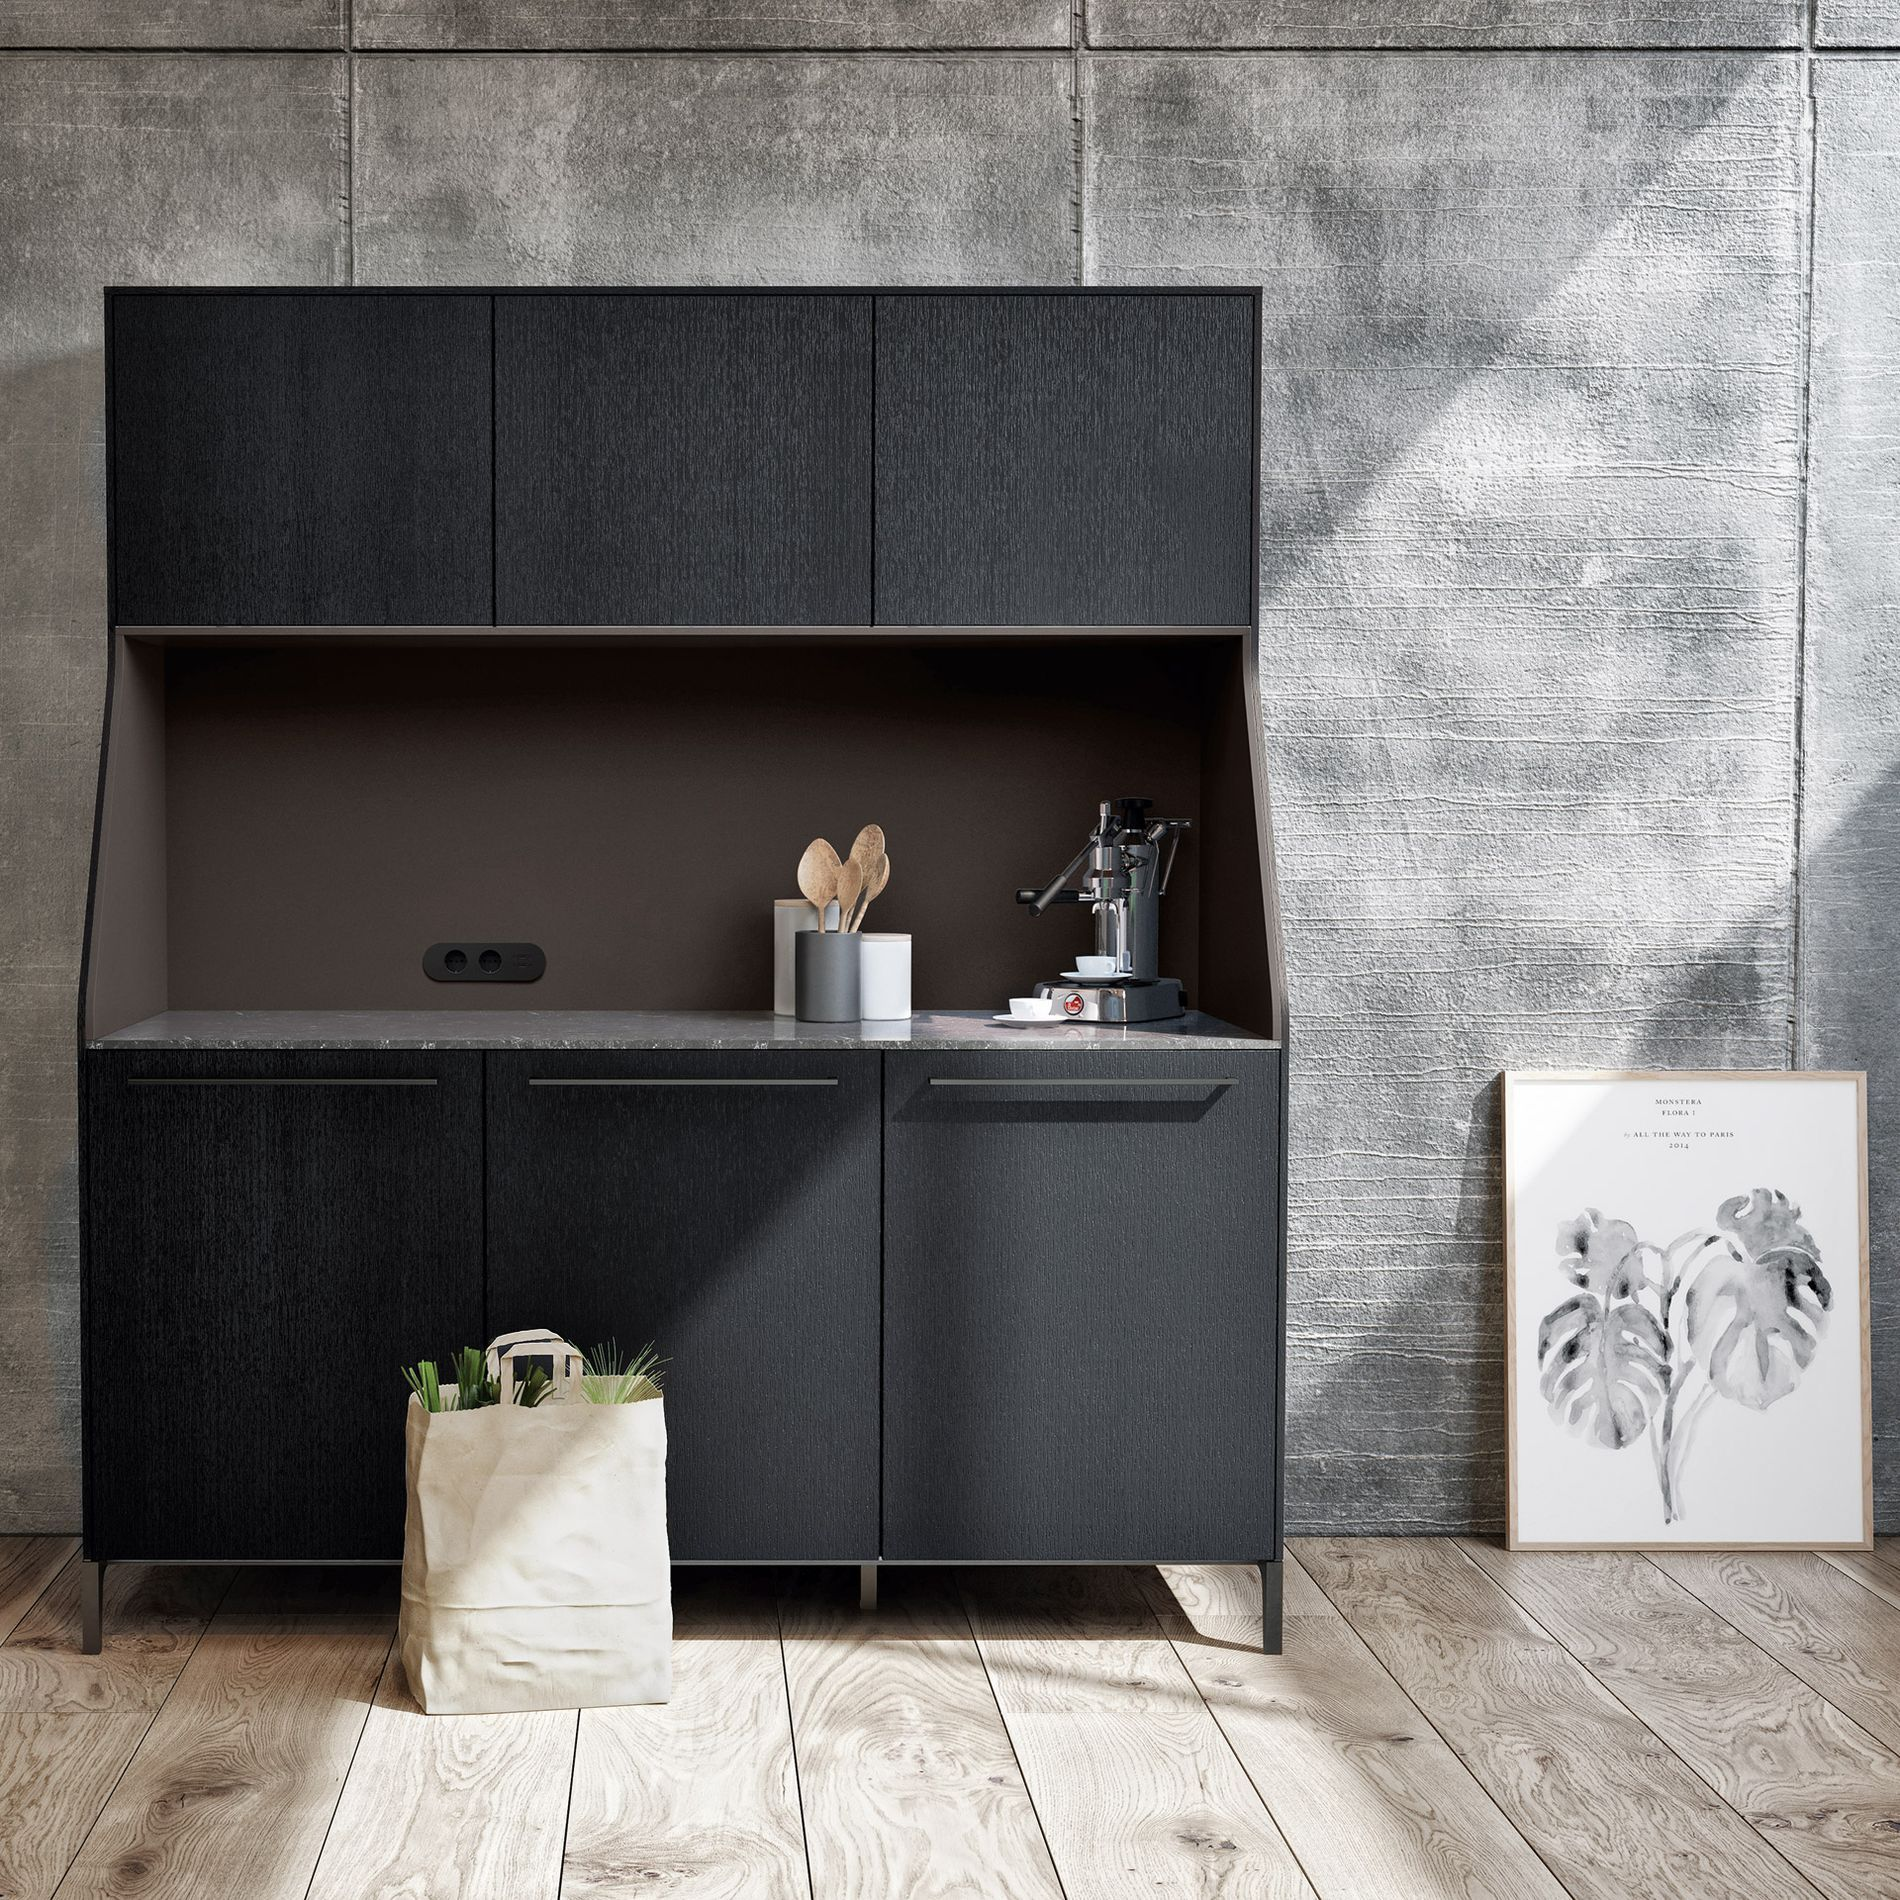 Jjo Urban Kitchen Modern Fitted Kitchens: Kitchen Of The Week: A Kitchen Modeled After A Sideboard